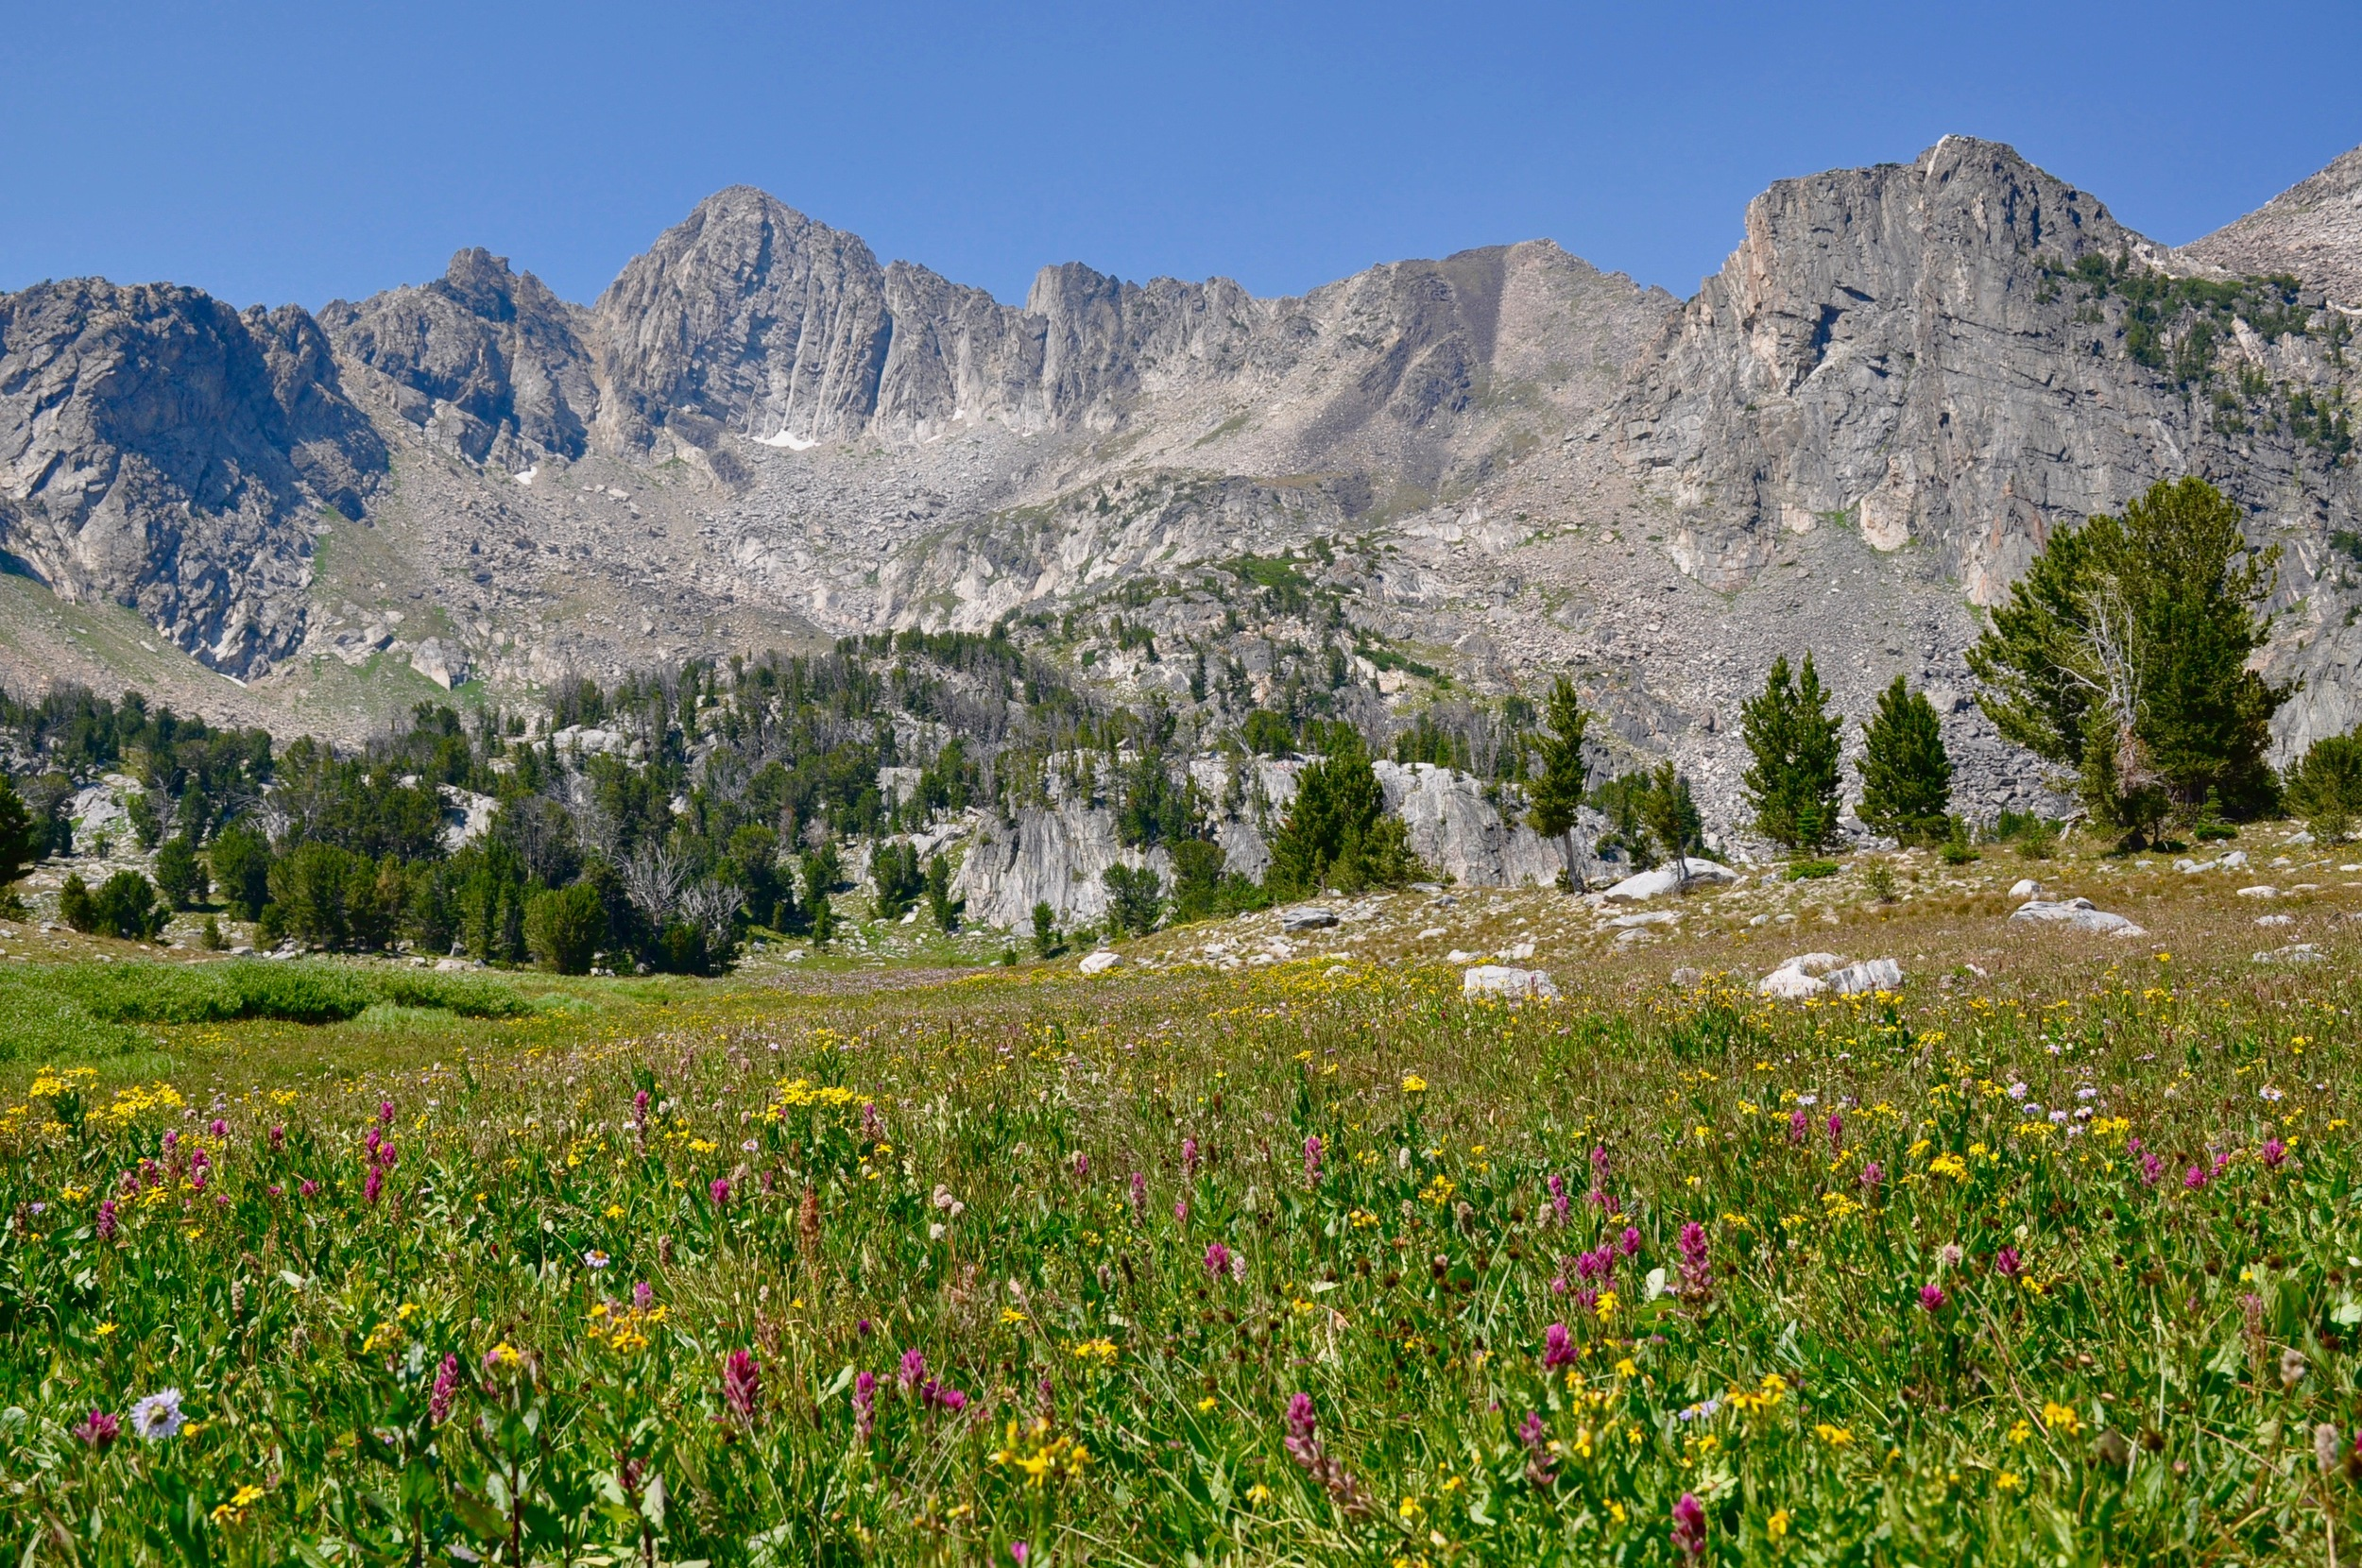 The flowers in Beehive Basin greeted us in full bloom, even under the smoke filled skies from wildfires in Idaho and absolutely scorching heat of full on high desert summer heat.  This place is one of natures great cathedral, truly sacred.  I cannot help feel awe here and reflect in the mountain lake.  Bear Basin next year.